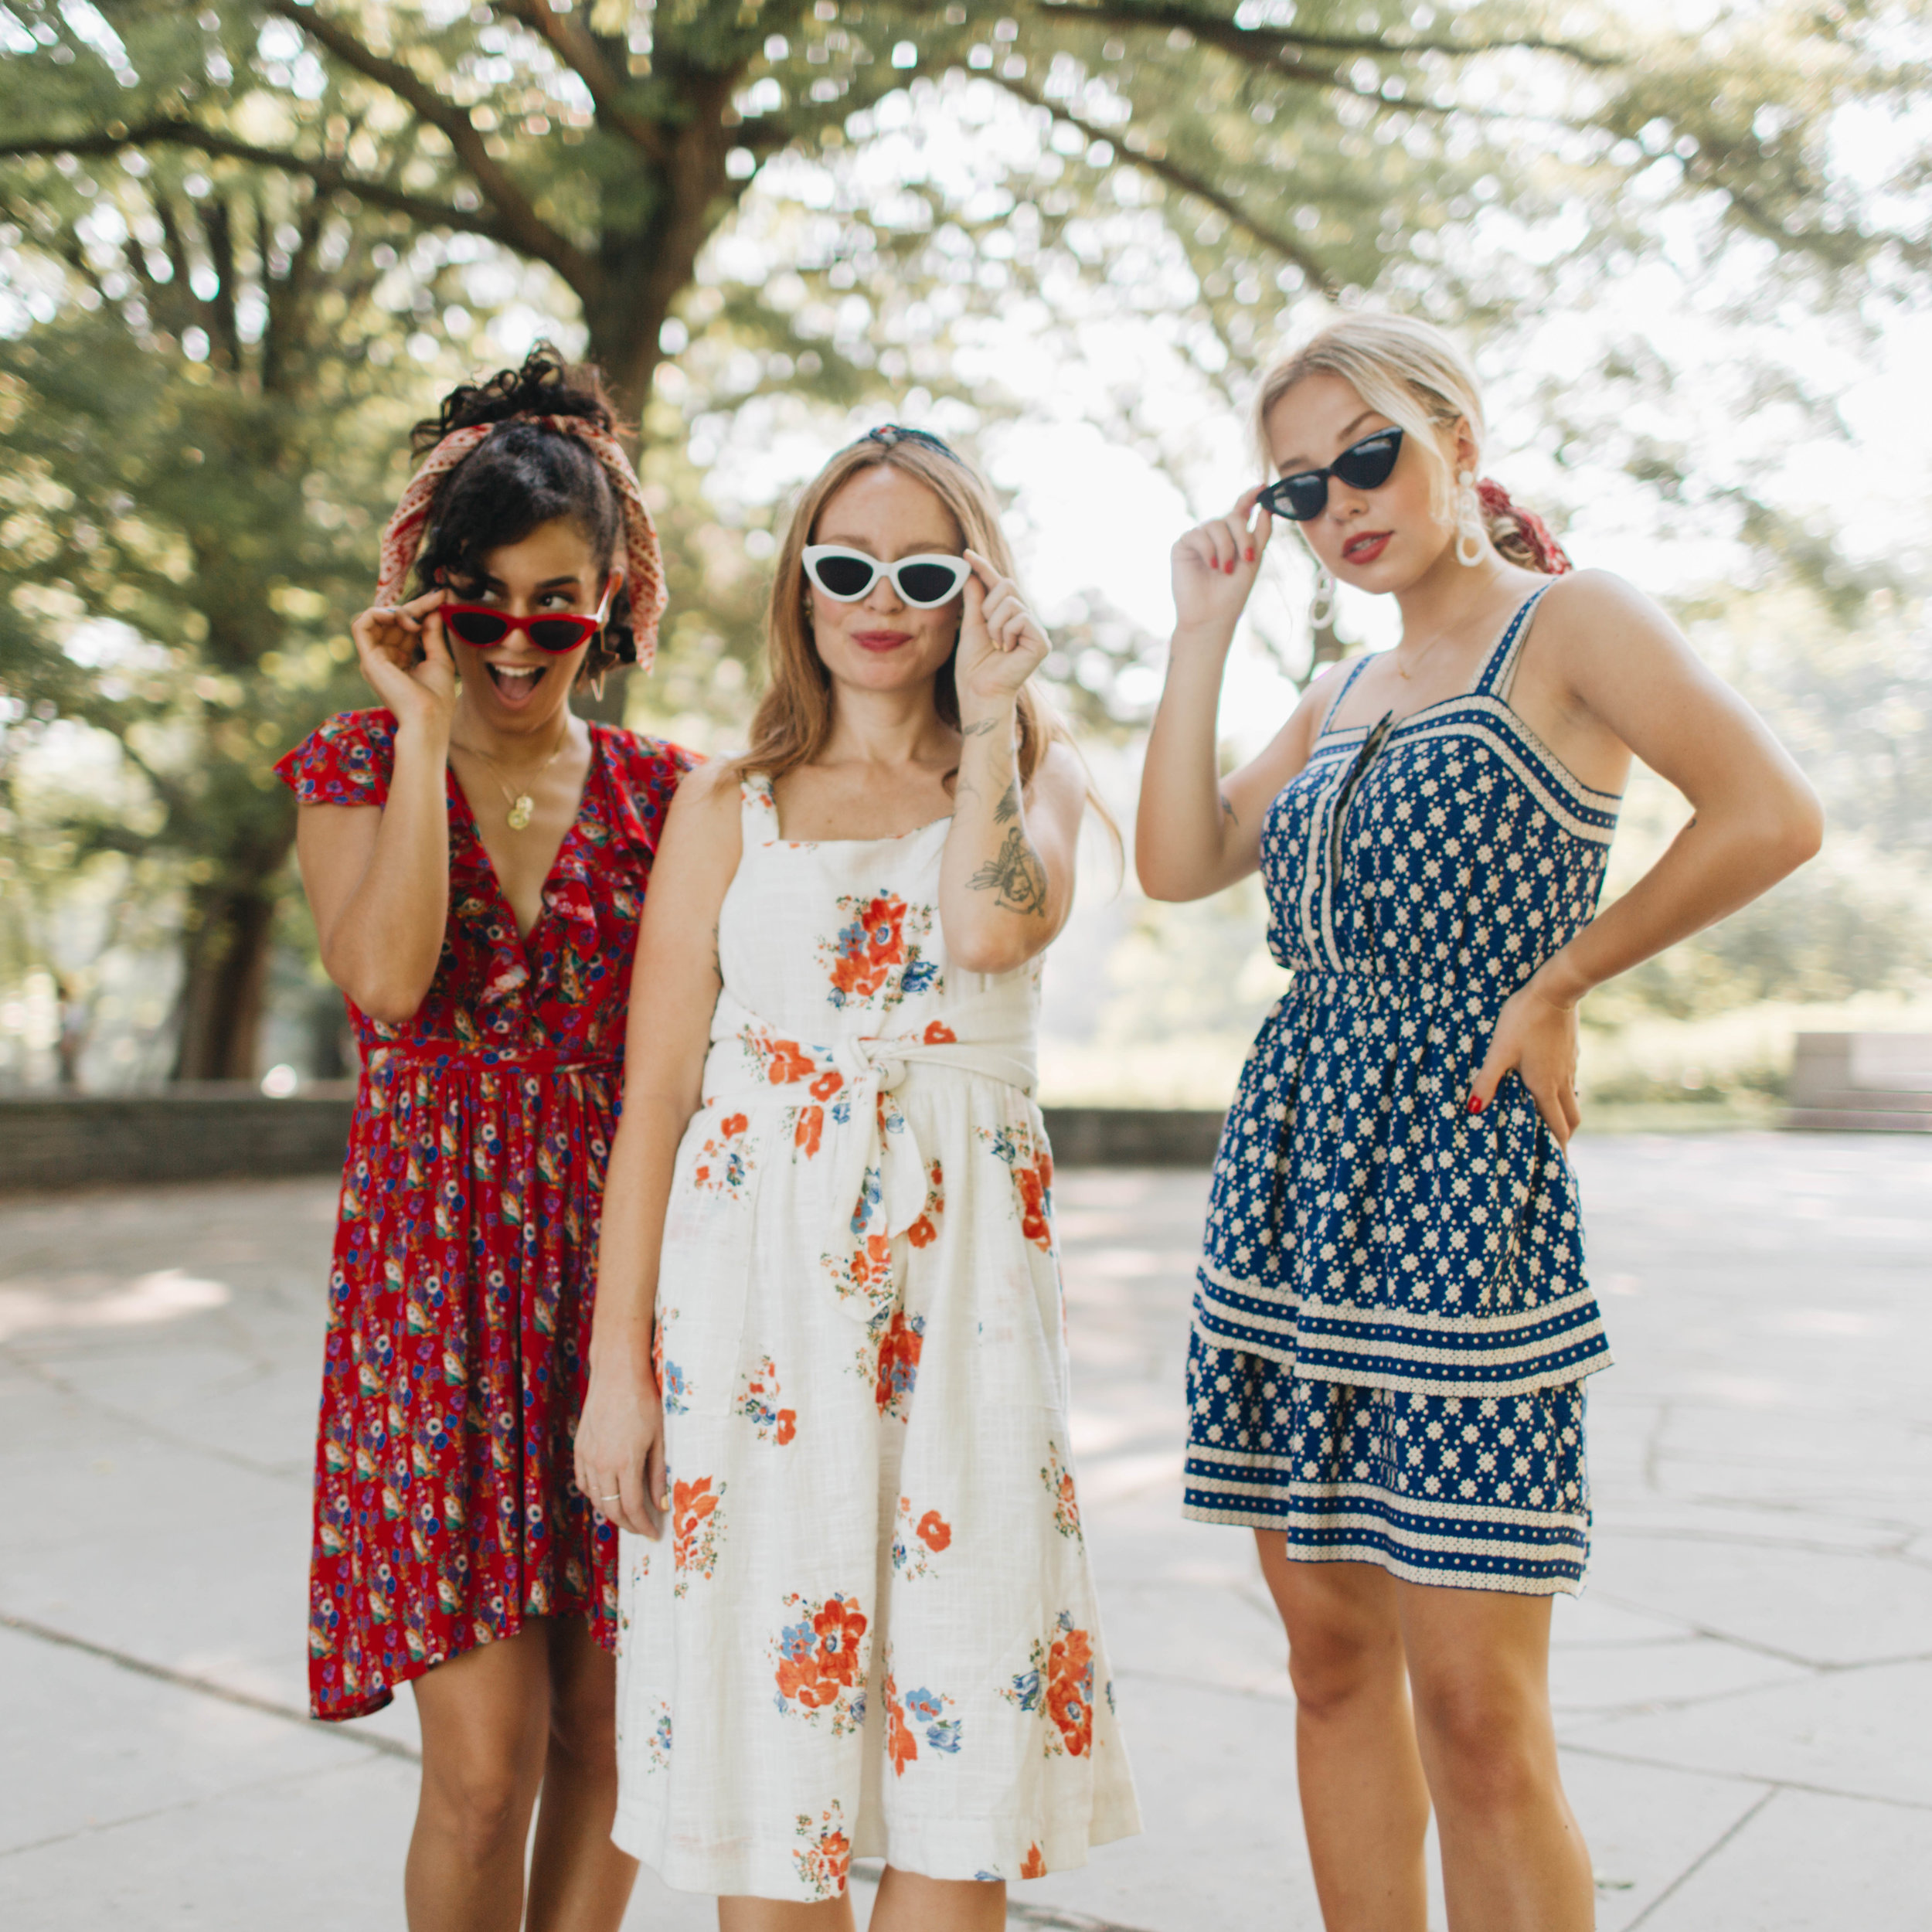 Anthropologie_July_4th_The_Teagues28.jpg